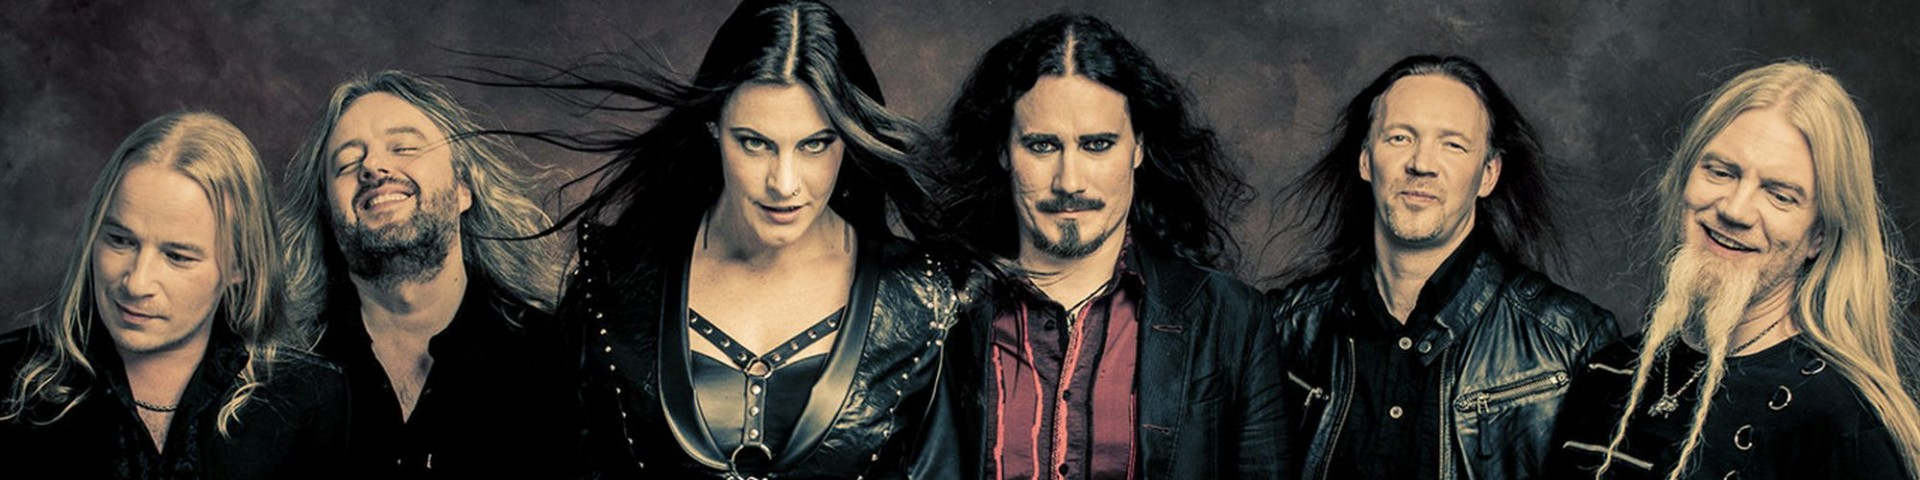 Nightwish a Milano – 3/12